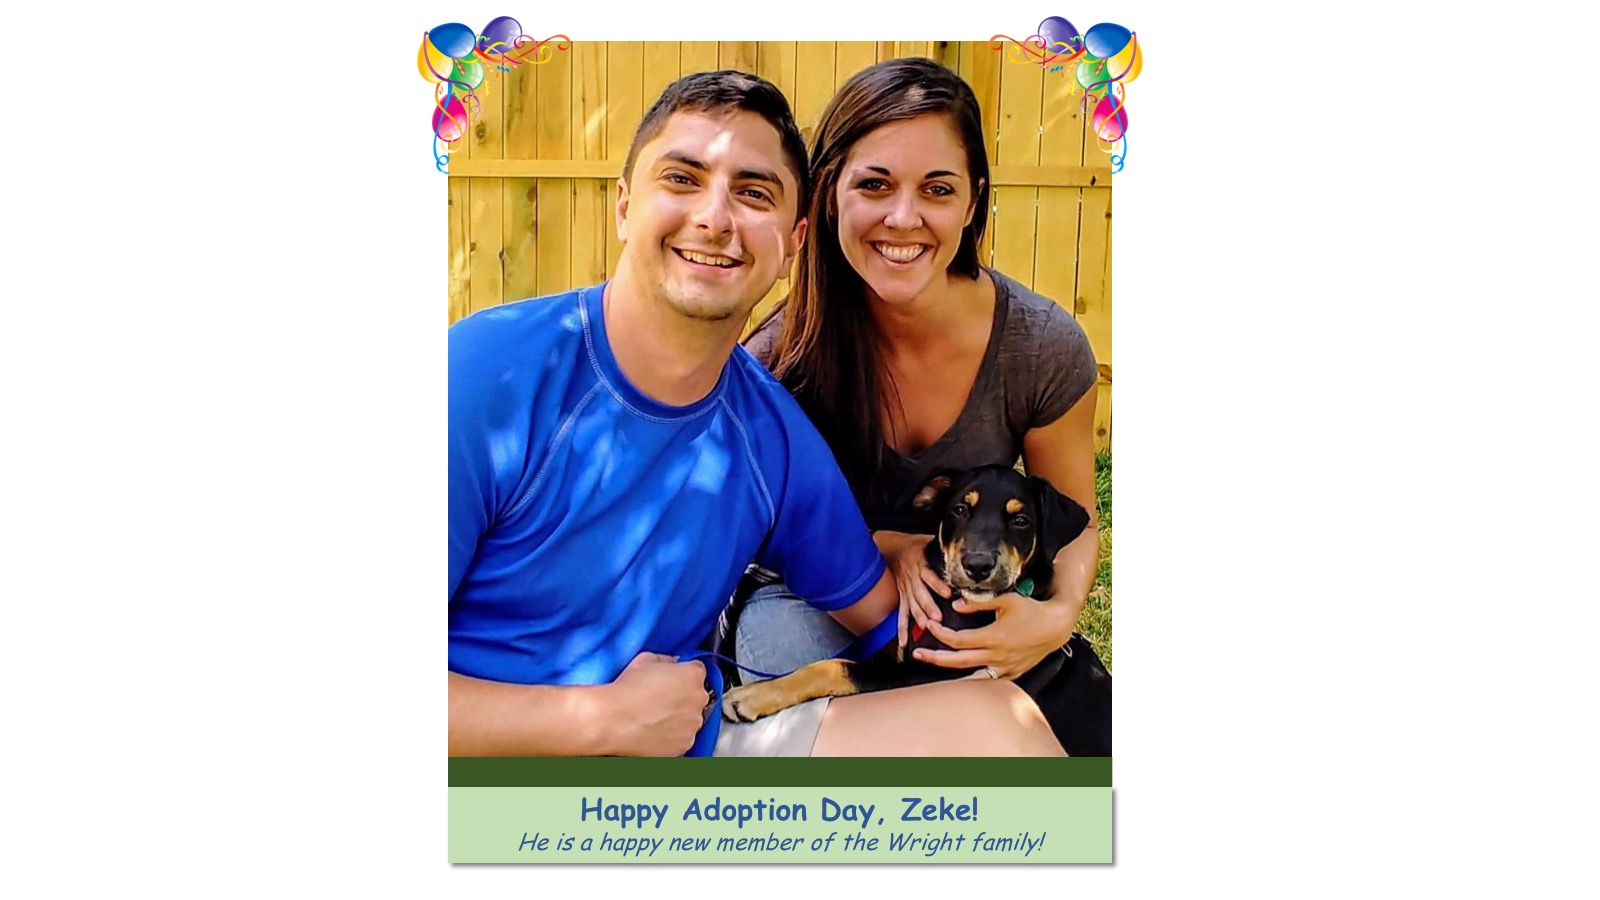 Zeke_Adoption_Photo_2018.jpg